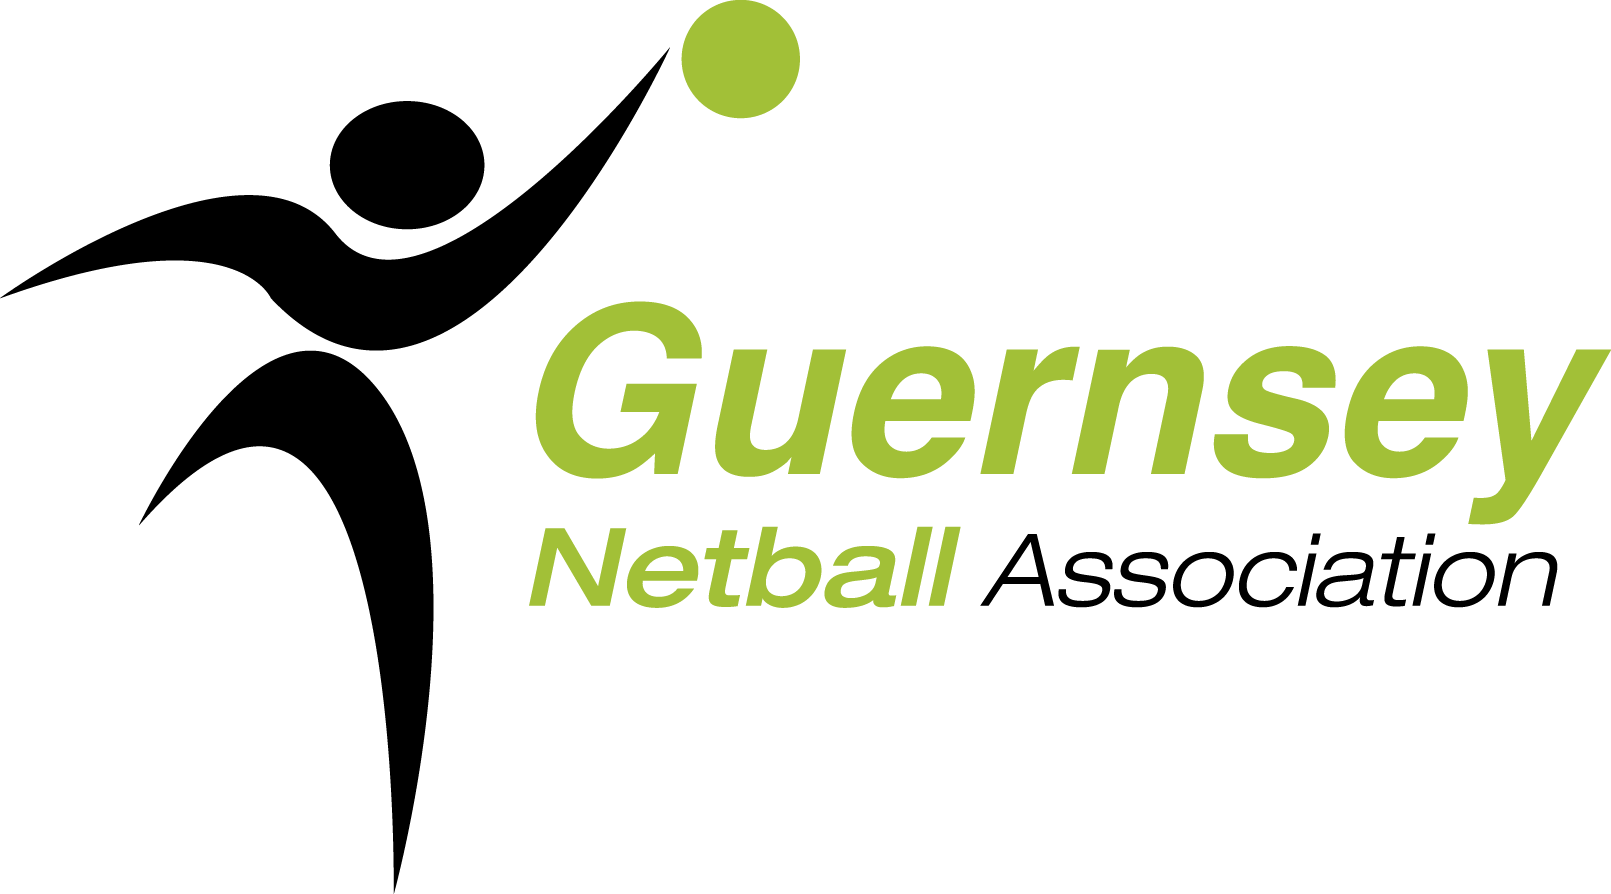 The home of Guernsey Netball